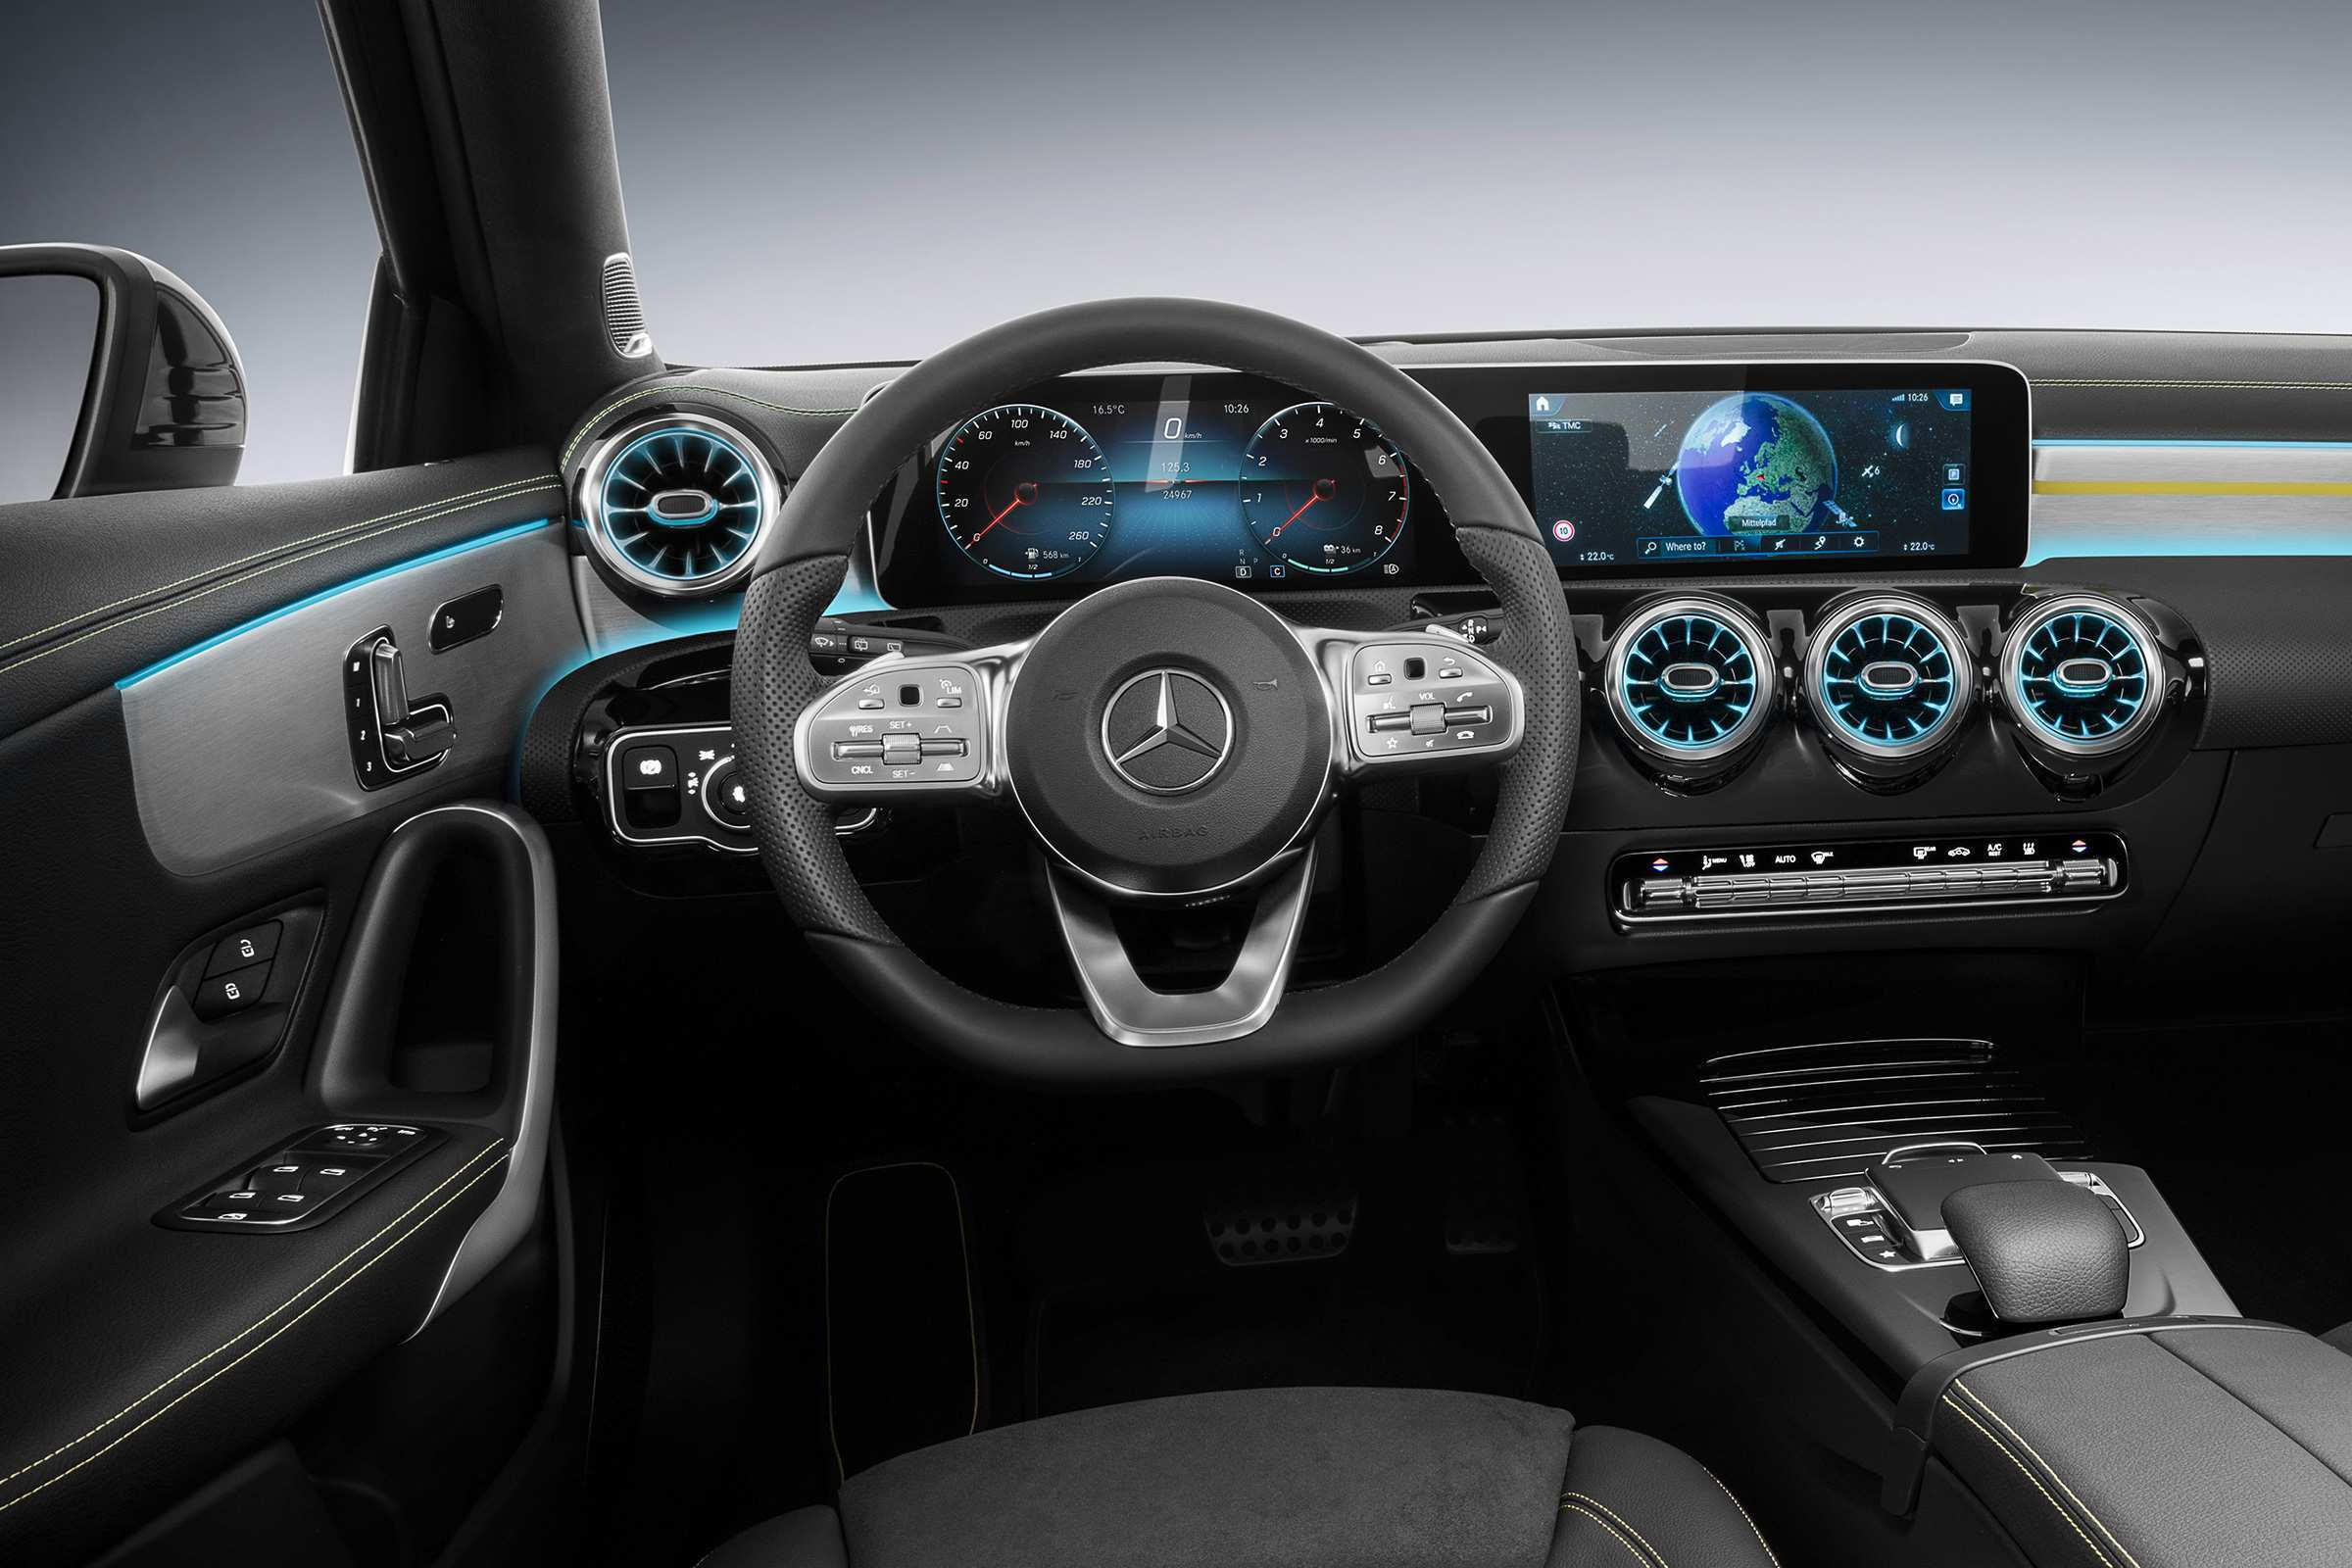 97 New Mercedes Gla 2019 Interior Release with Mercedes Gla 2019 Interior